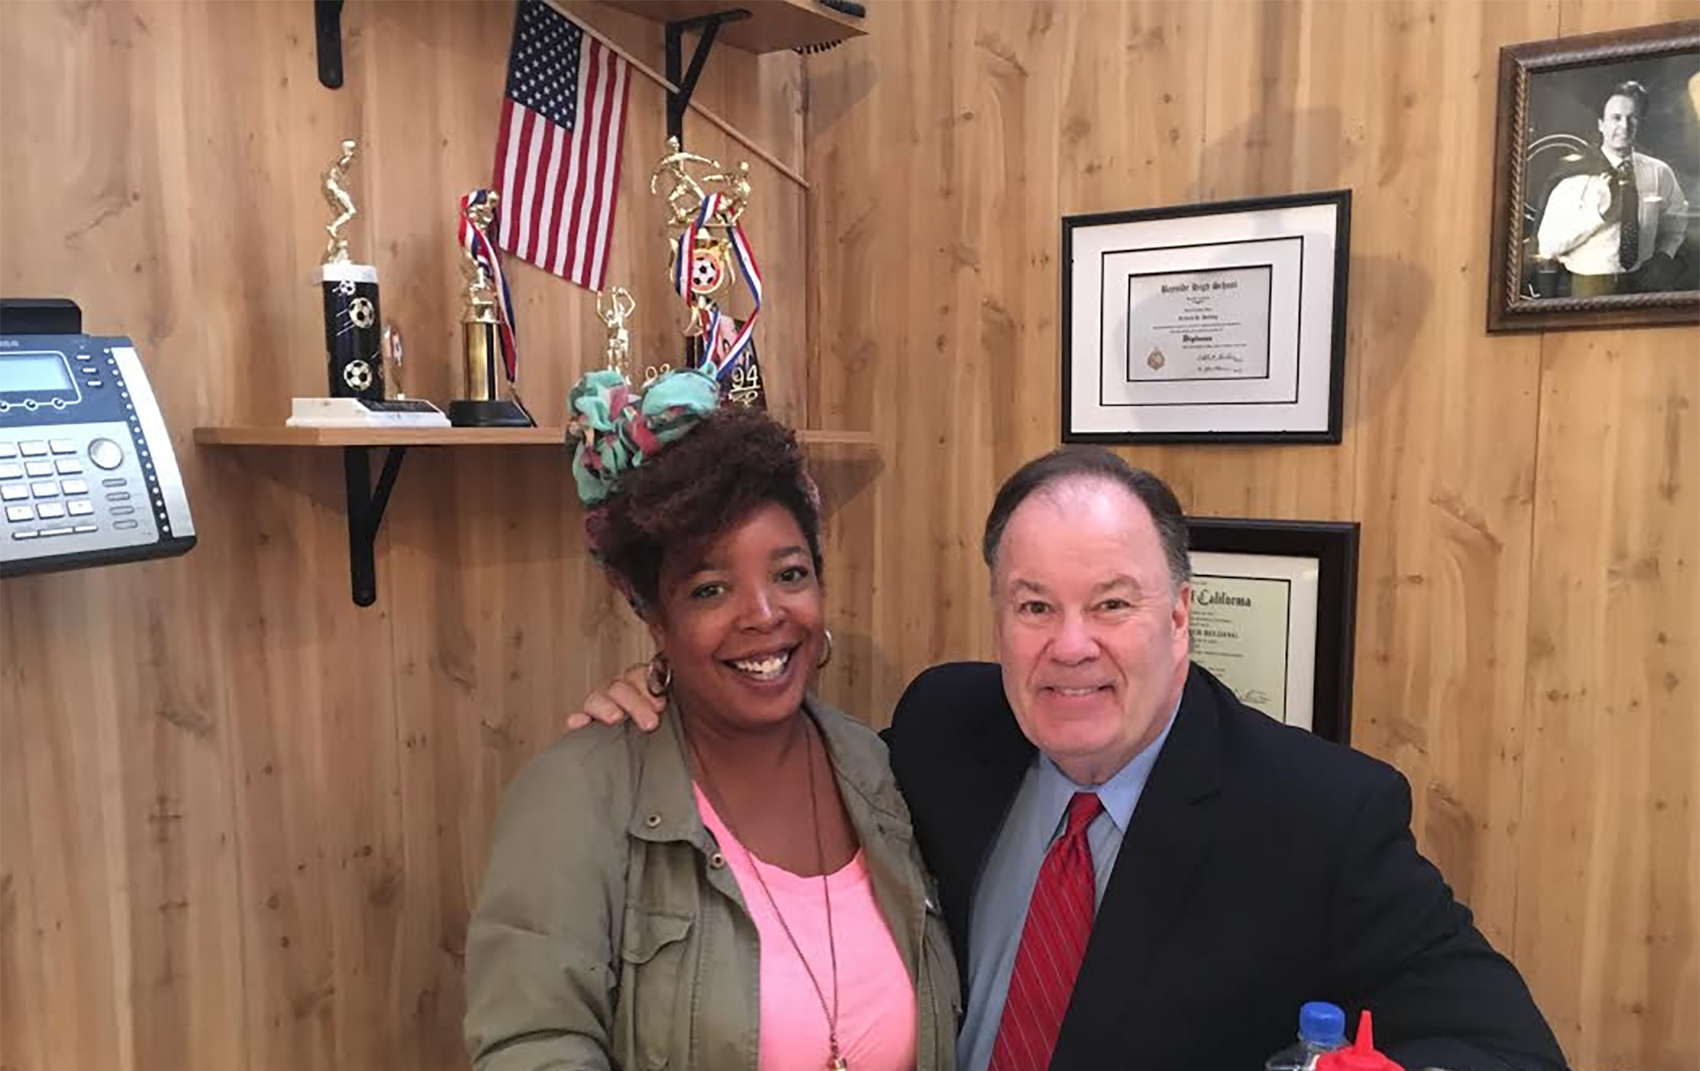 Dennis Haskins and Jill Hopkins in the prinicipal's office